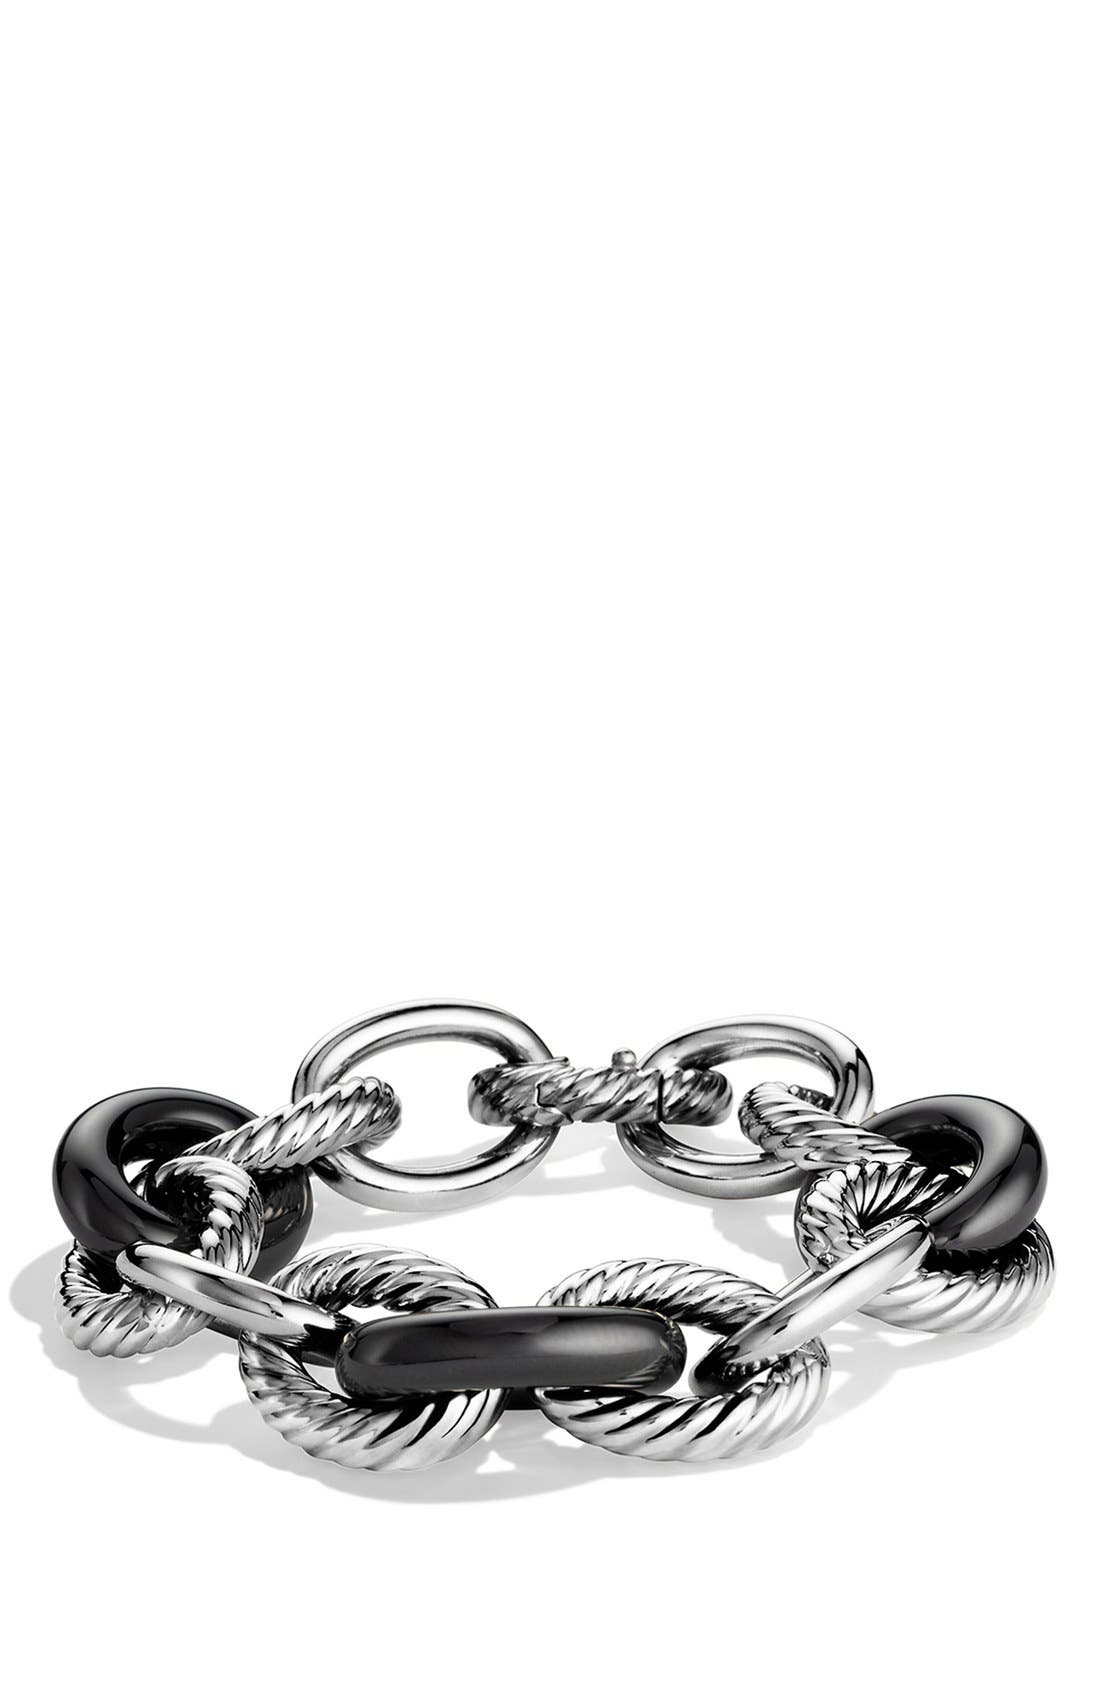 david yurman oval link bracelet david yurman oval large ceramic link bracelet 298